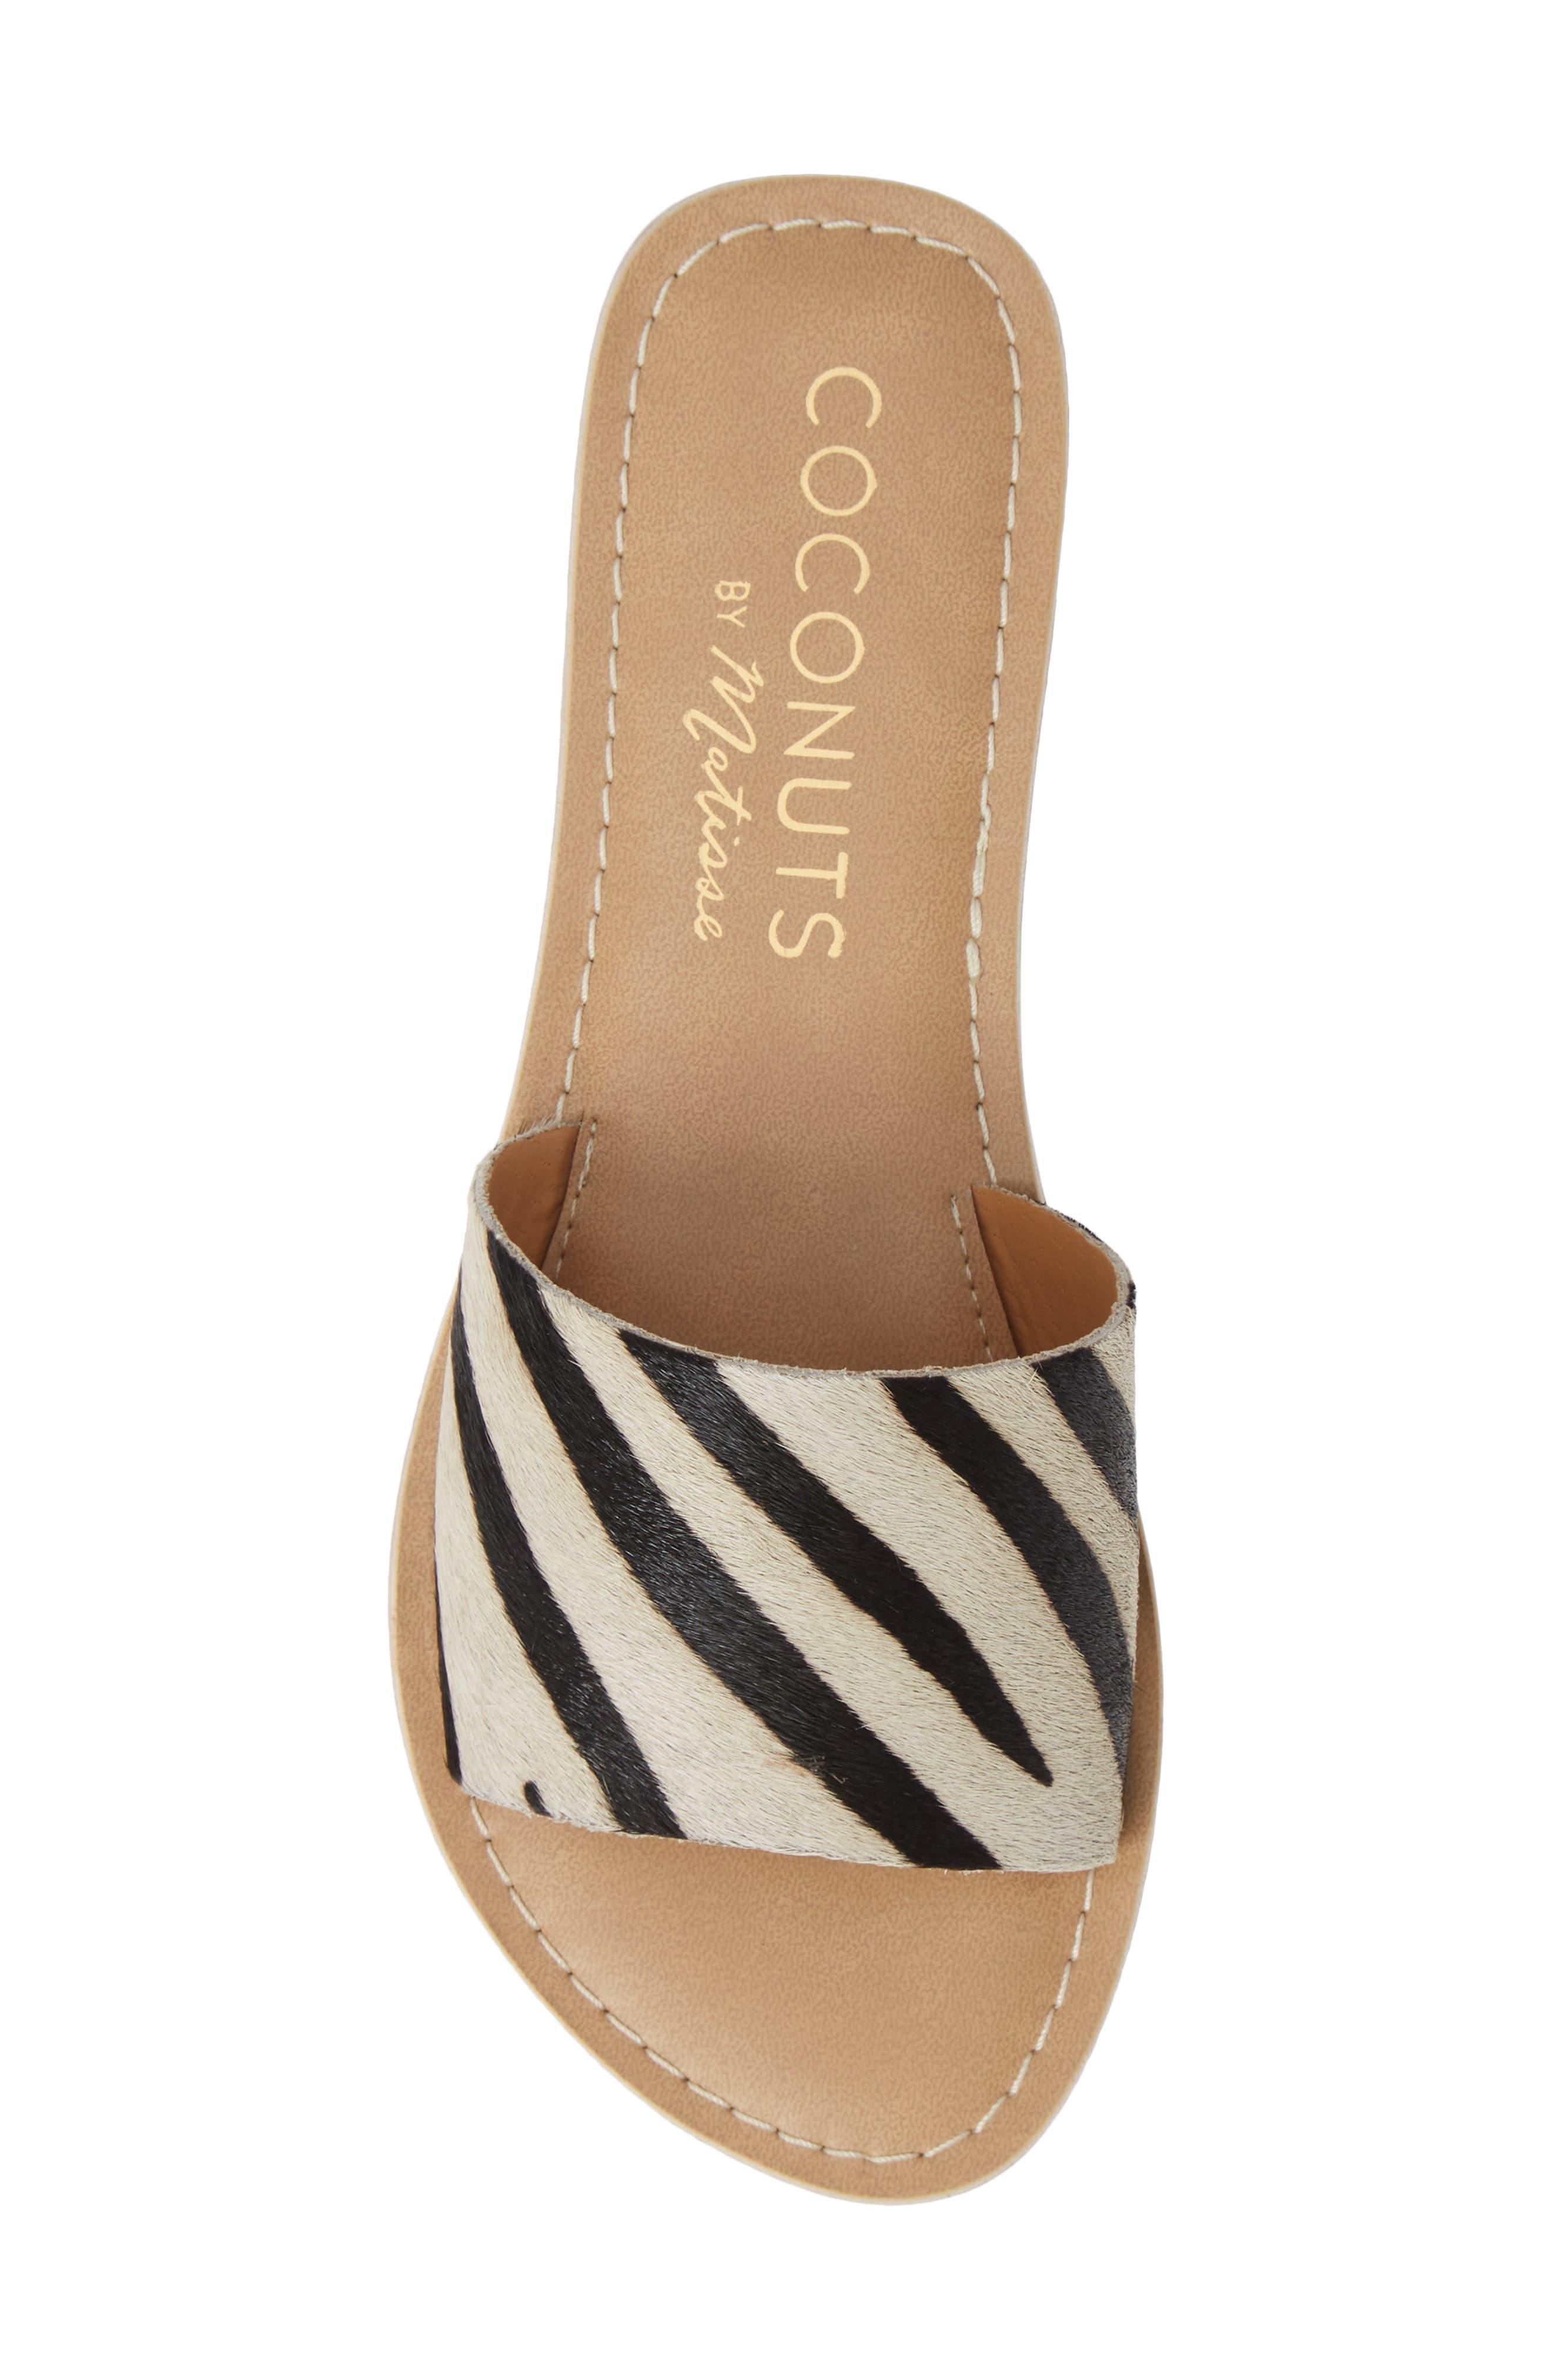 Cabana Genuine Calf Hair Slide Sandal,                             Alternate thumbnail 5, color,                             ZEBRA PRINT CALF HAIR